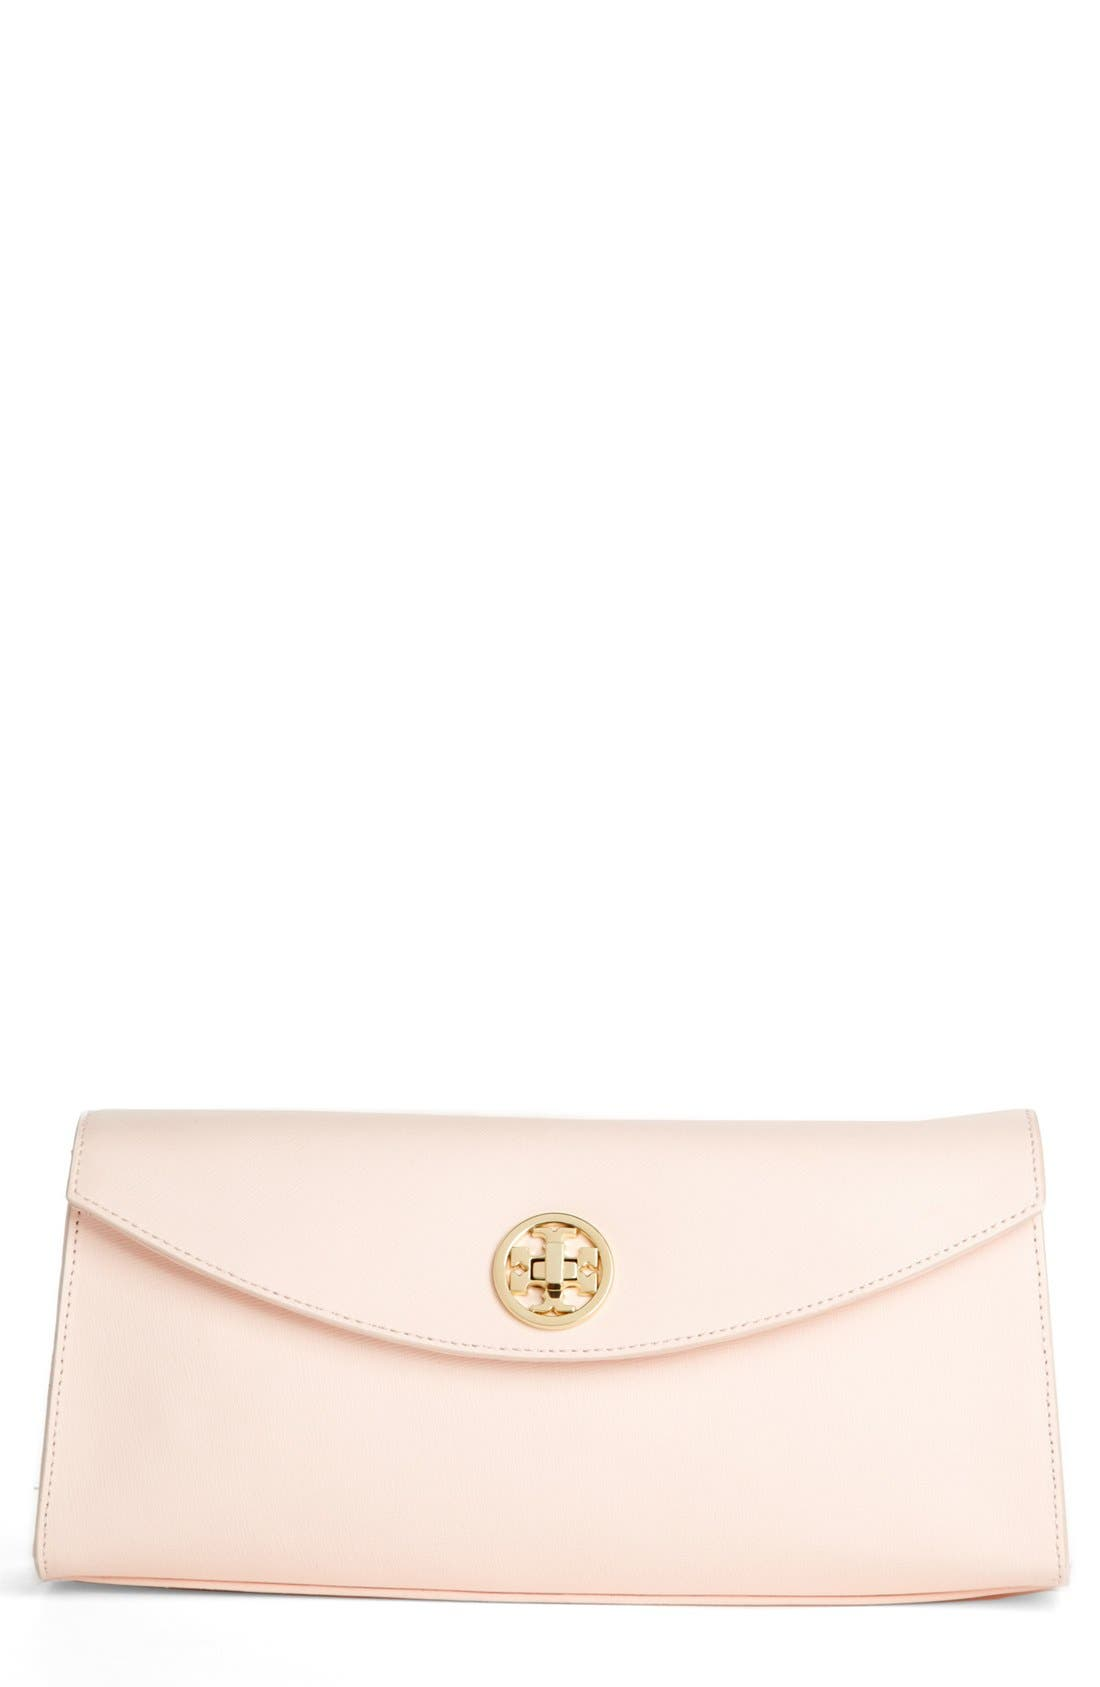 Main Image - Tory Burch 'Austin' Saffiano Leather Flap Clutch